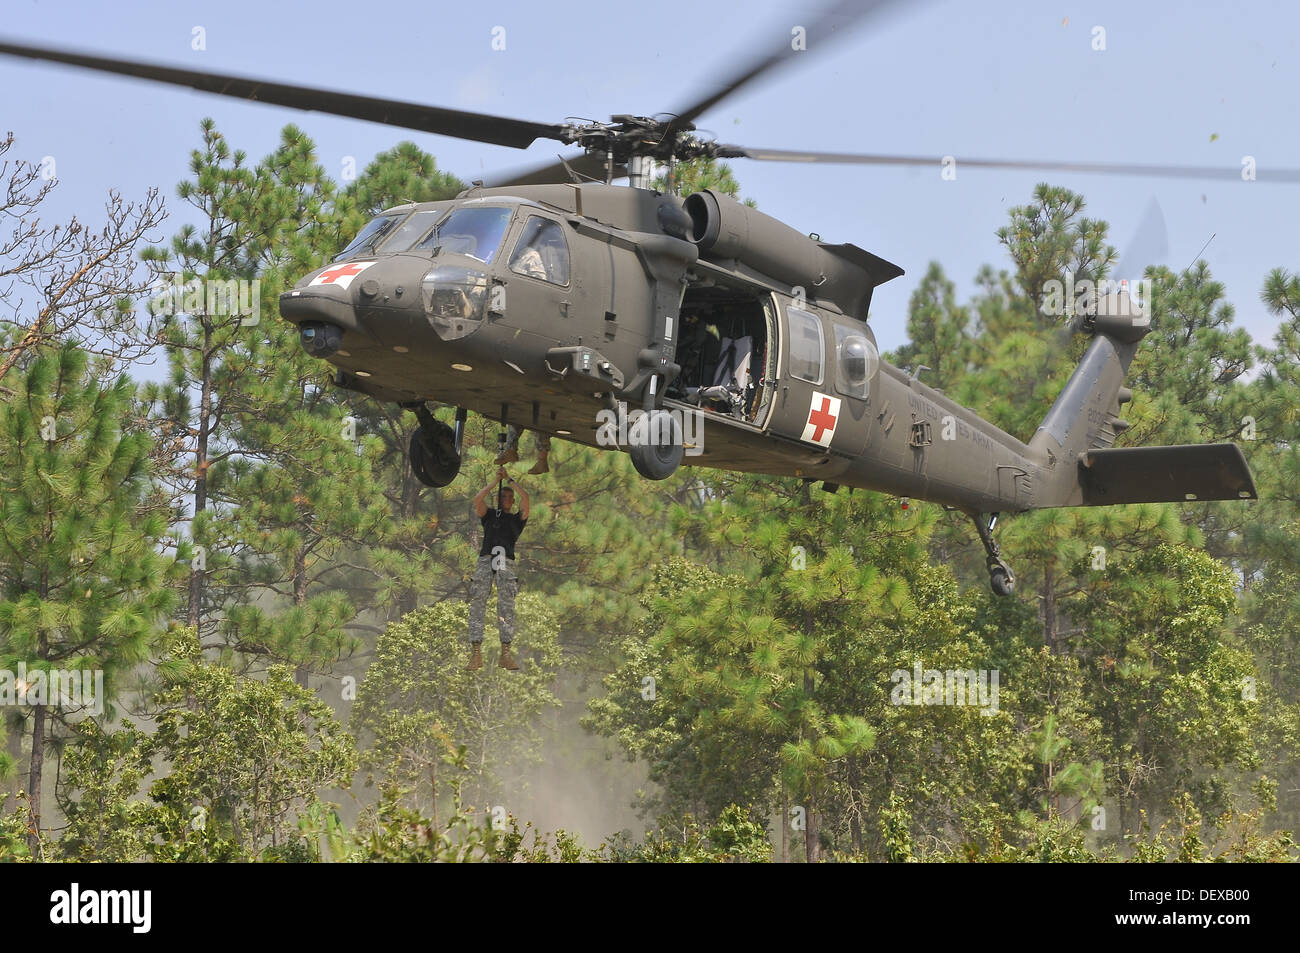 Paratroopers of the 82nd Airborne Division's 2nd Brigade Combat Team and Combat Aviation Brigade evacuate a simulated casualty - Stock Image